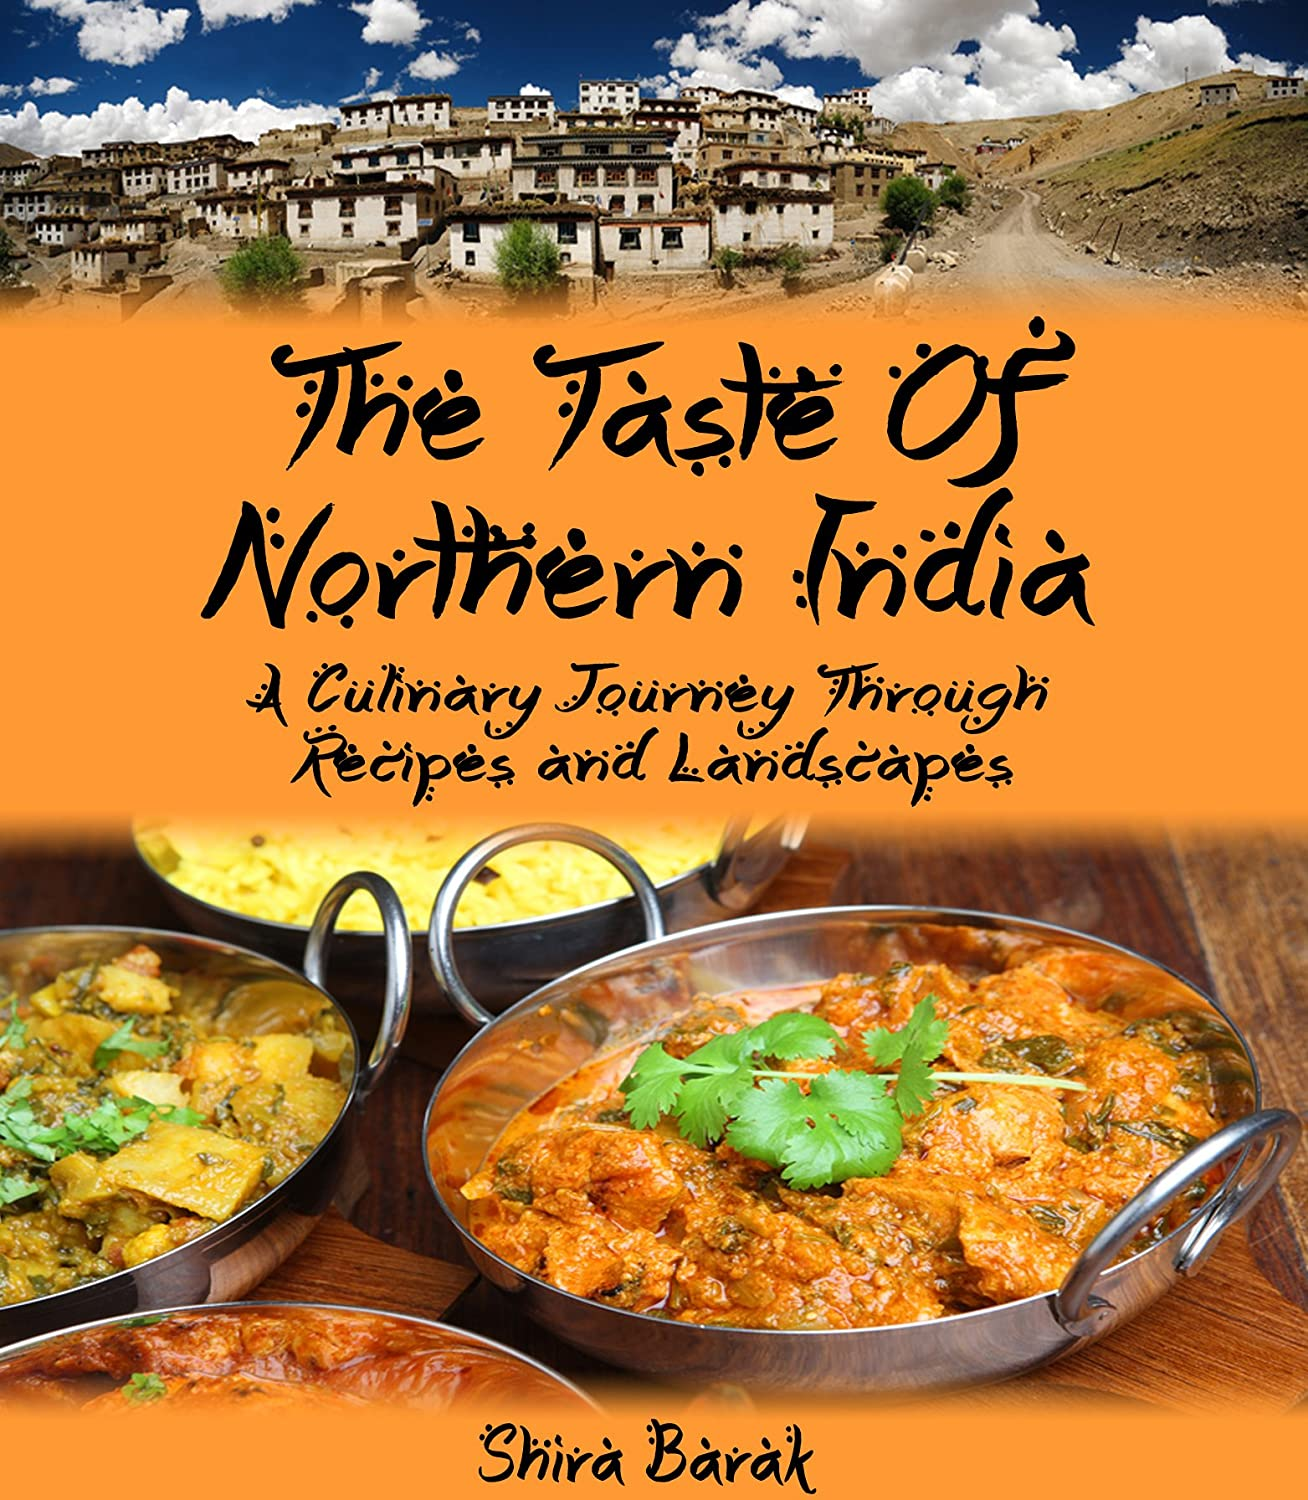 The Taste of Northern India: A Culinary Journey Through Recipes and Landscapes by Shira Barak